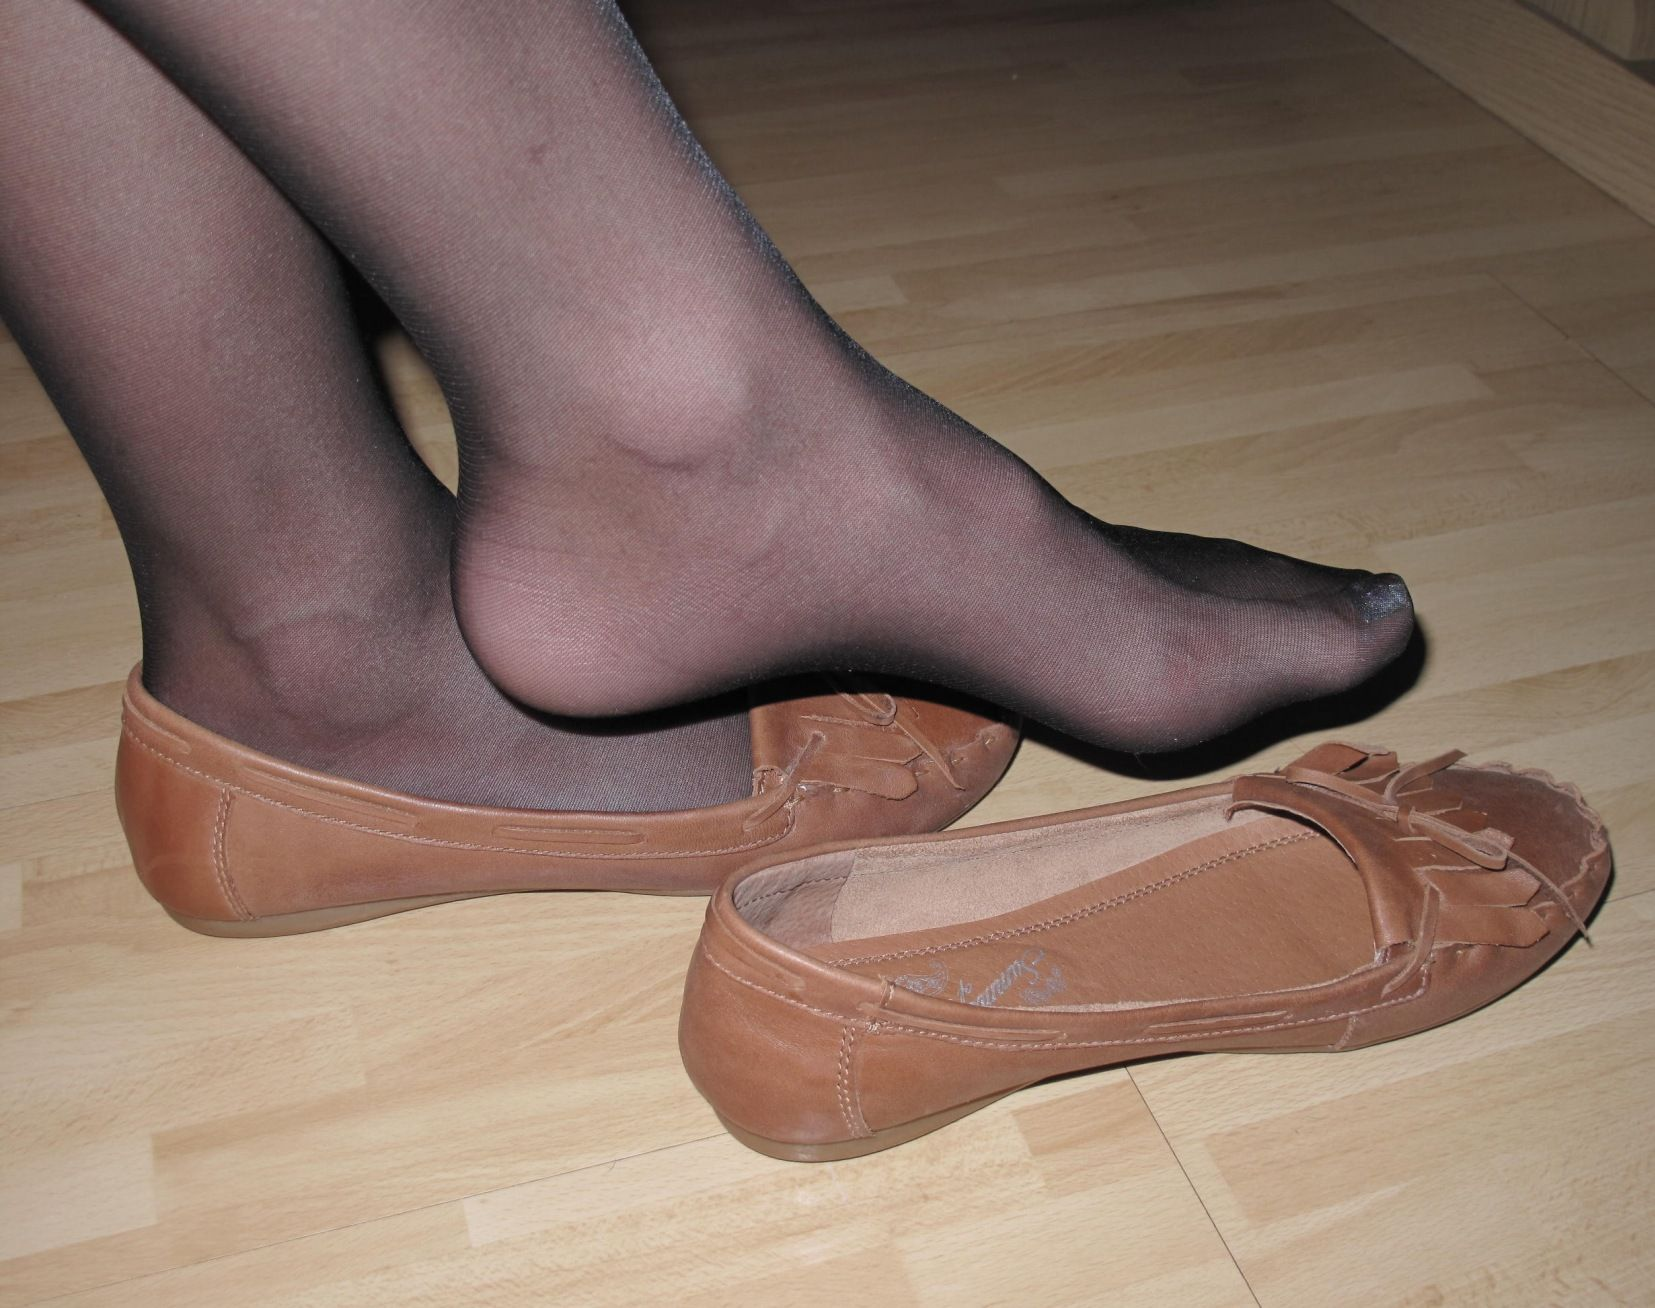 Pantyhose For Sandals 6